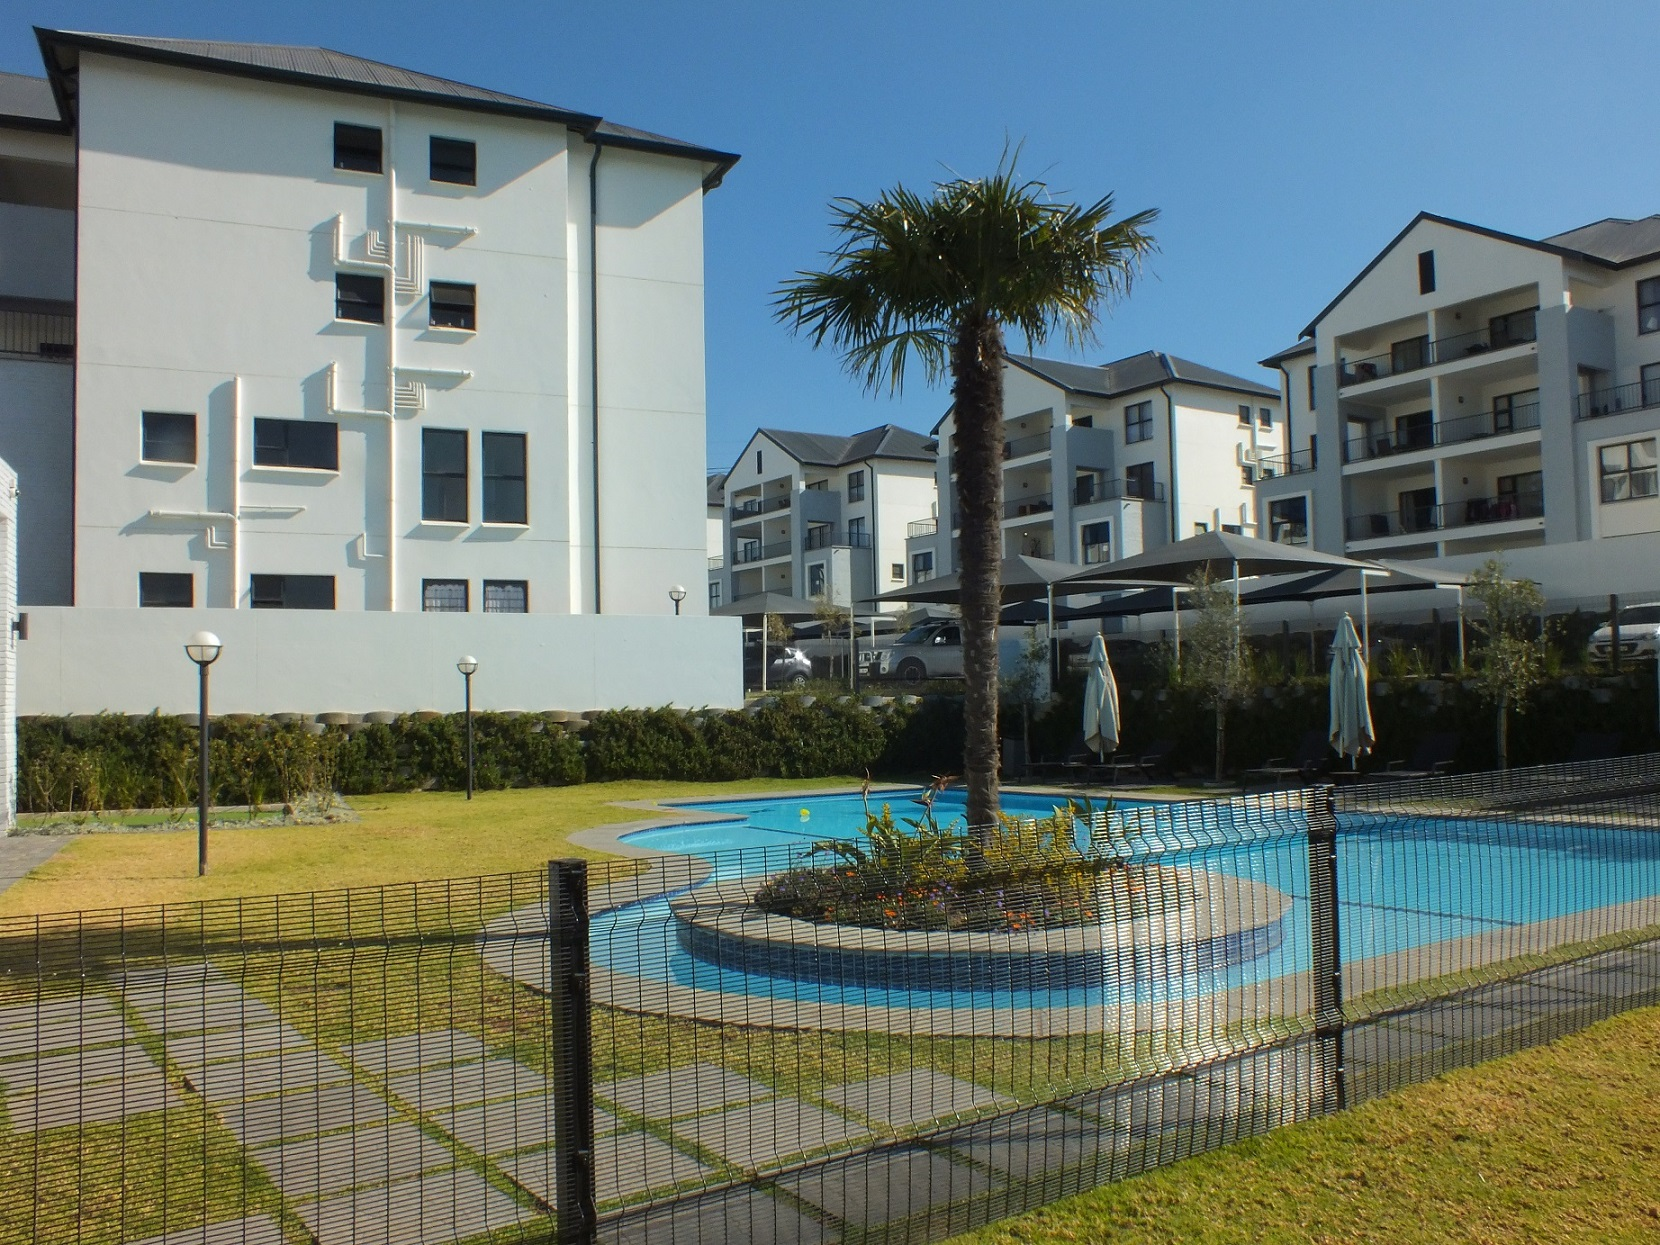 1 Bedroom Apartment for sale in Bryanston ENT0067747 : photo#0